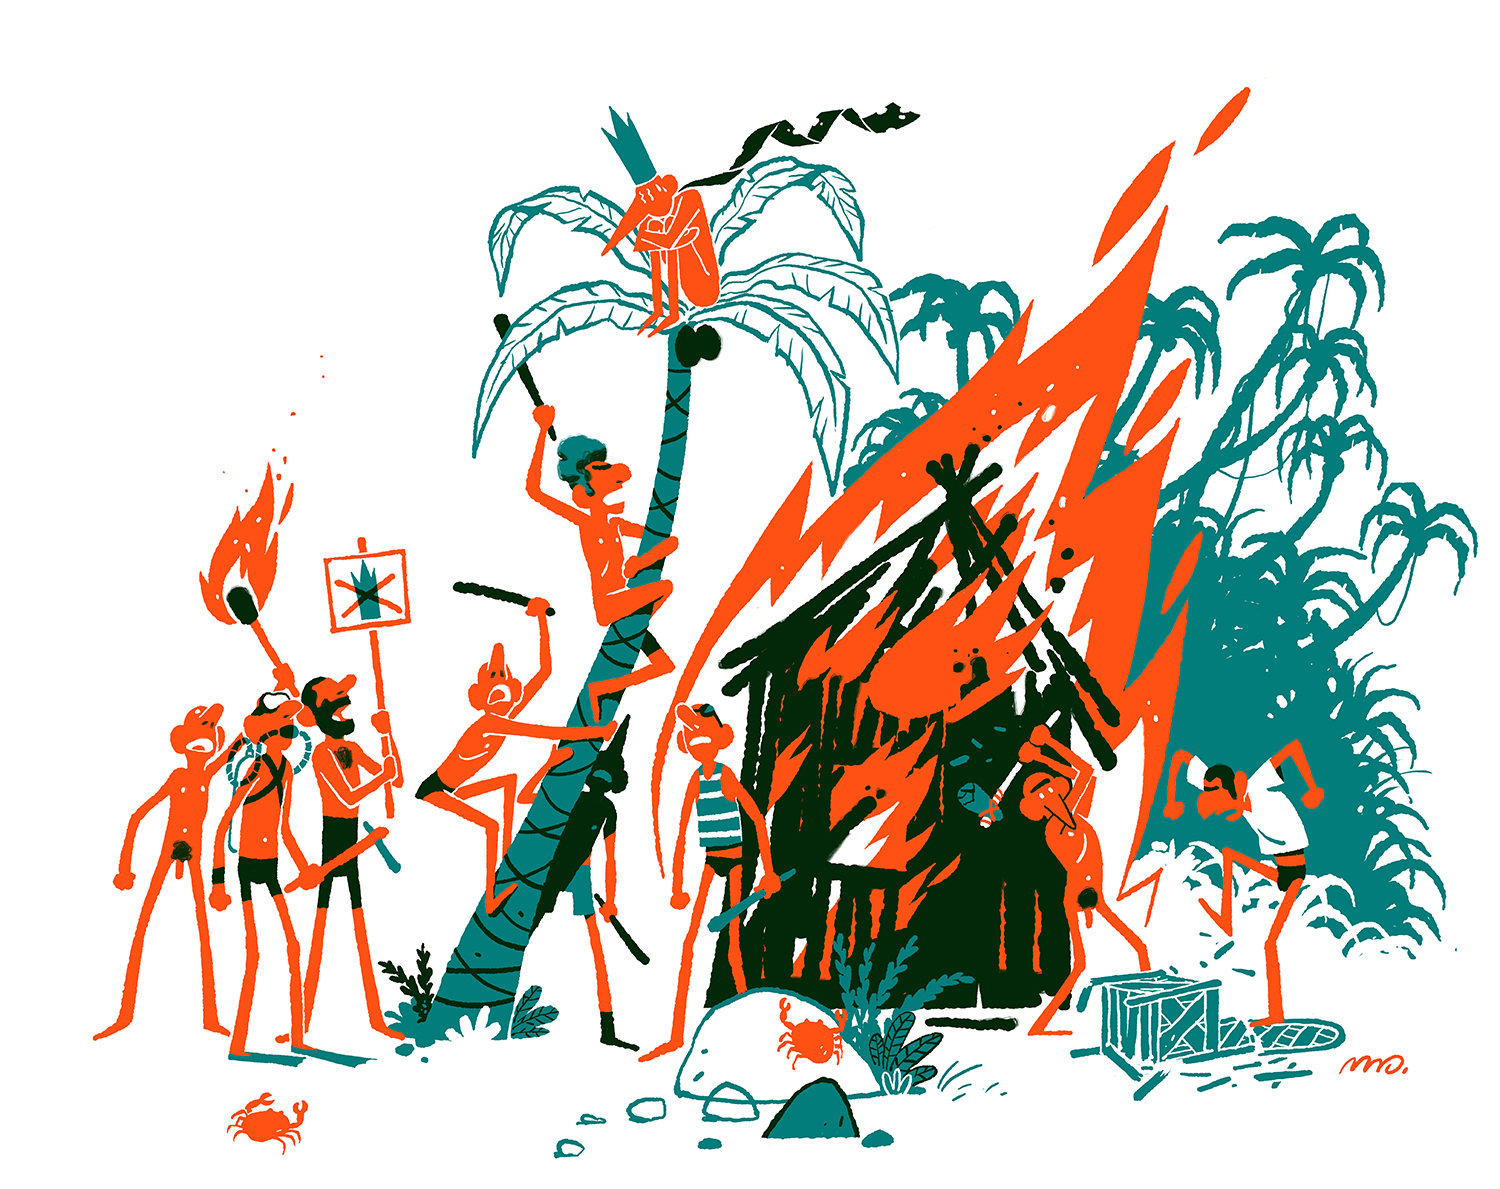 """Illustrations for the exhibition """"Fumetti"""" organised by  Atelier Radar  in France. 2012."""